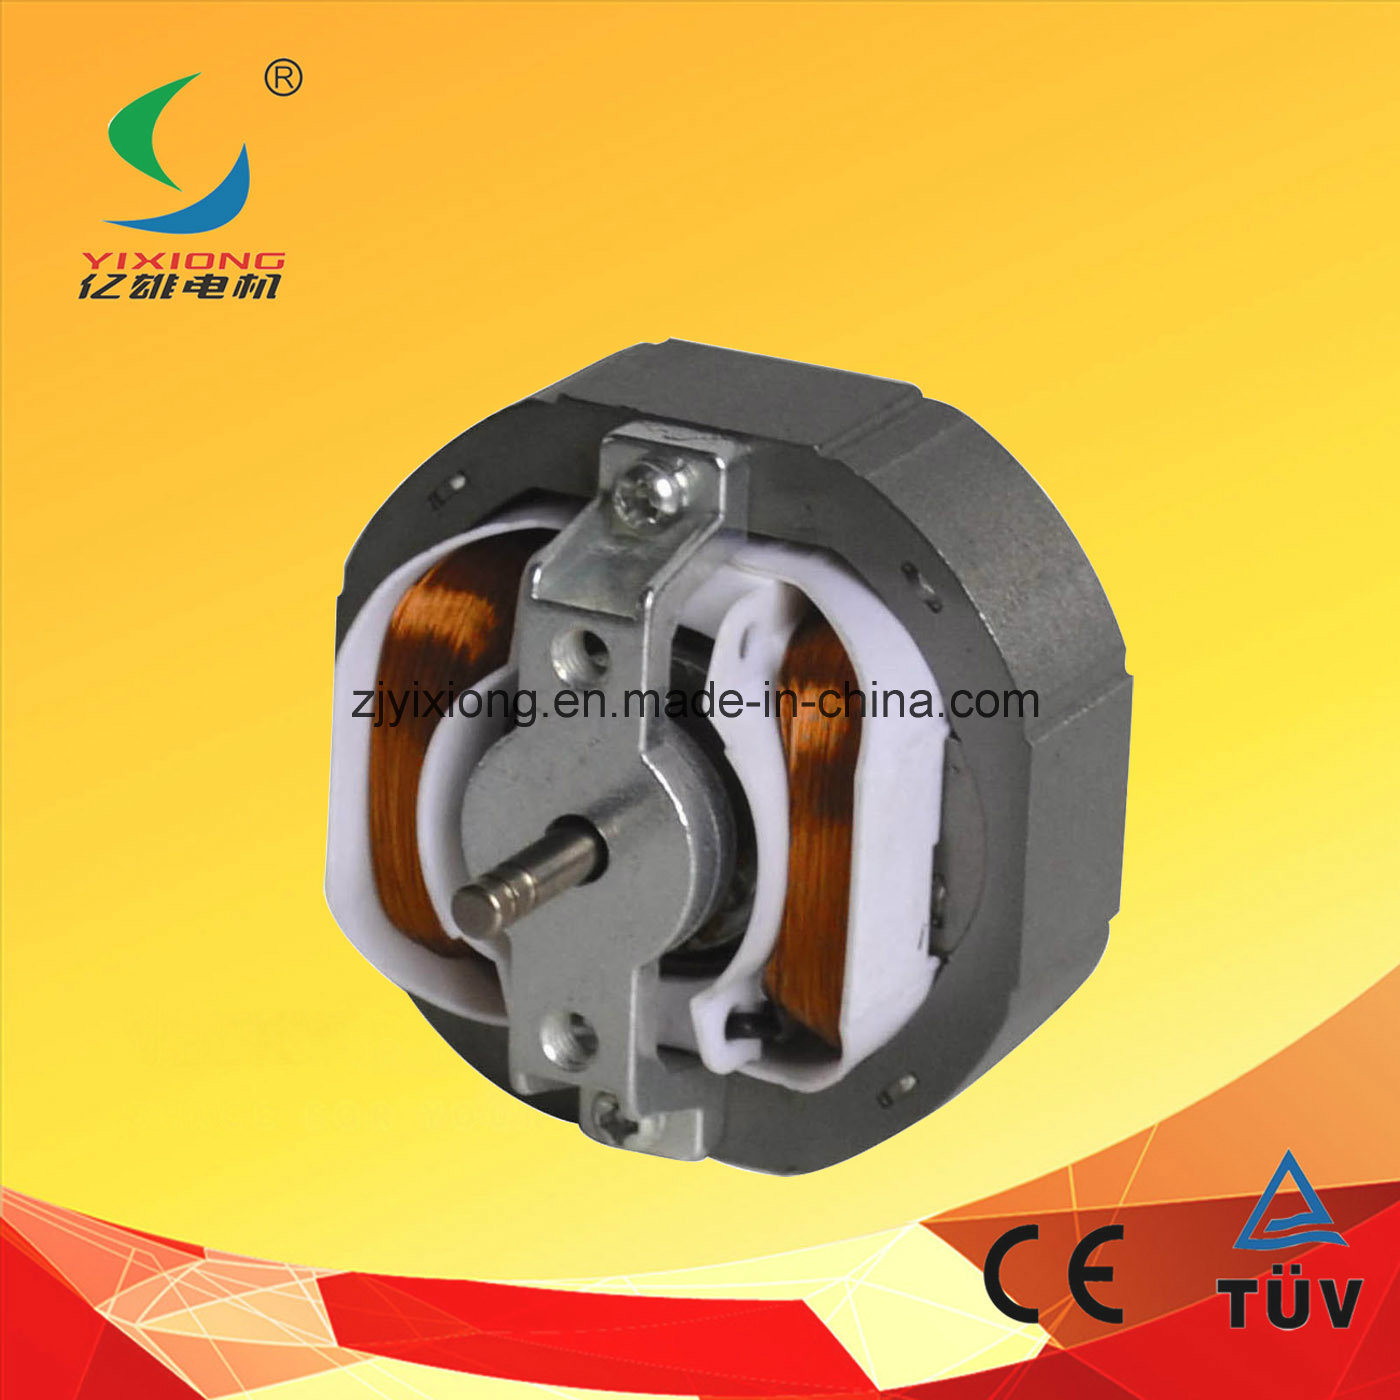 China Single Phase Ac Motor 240v With Copper Wire Wiring 230v 50hz